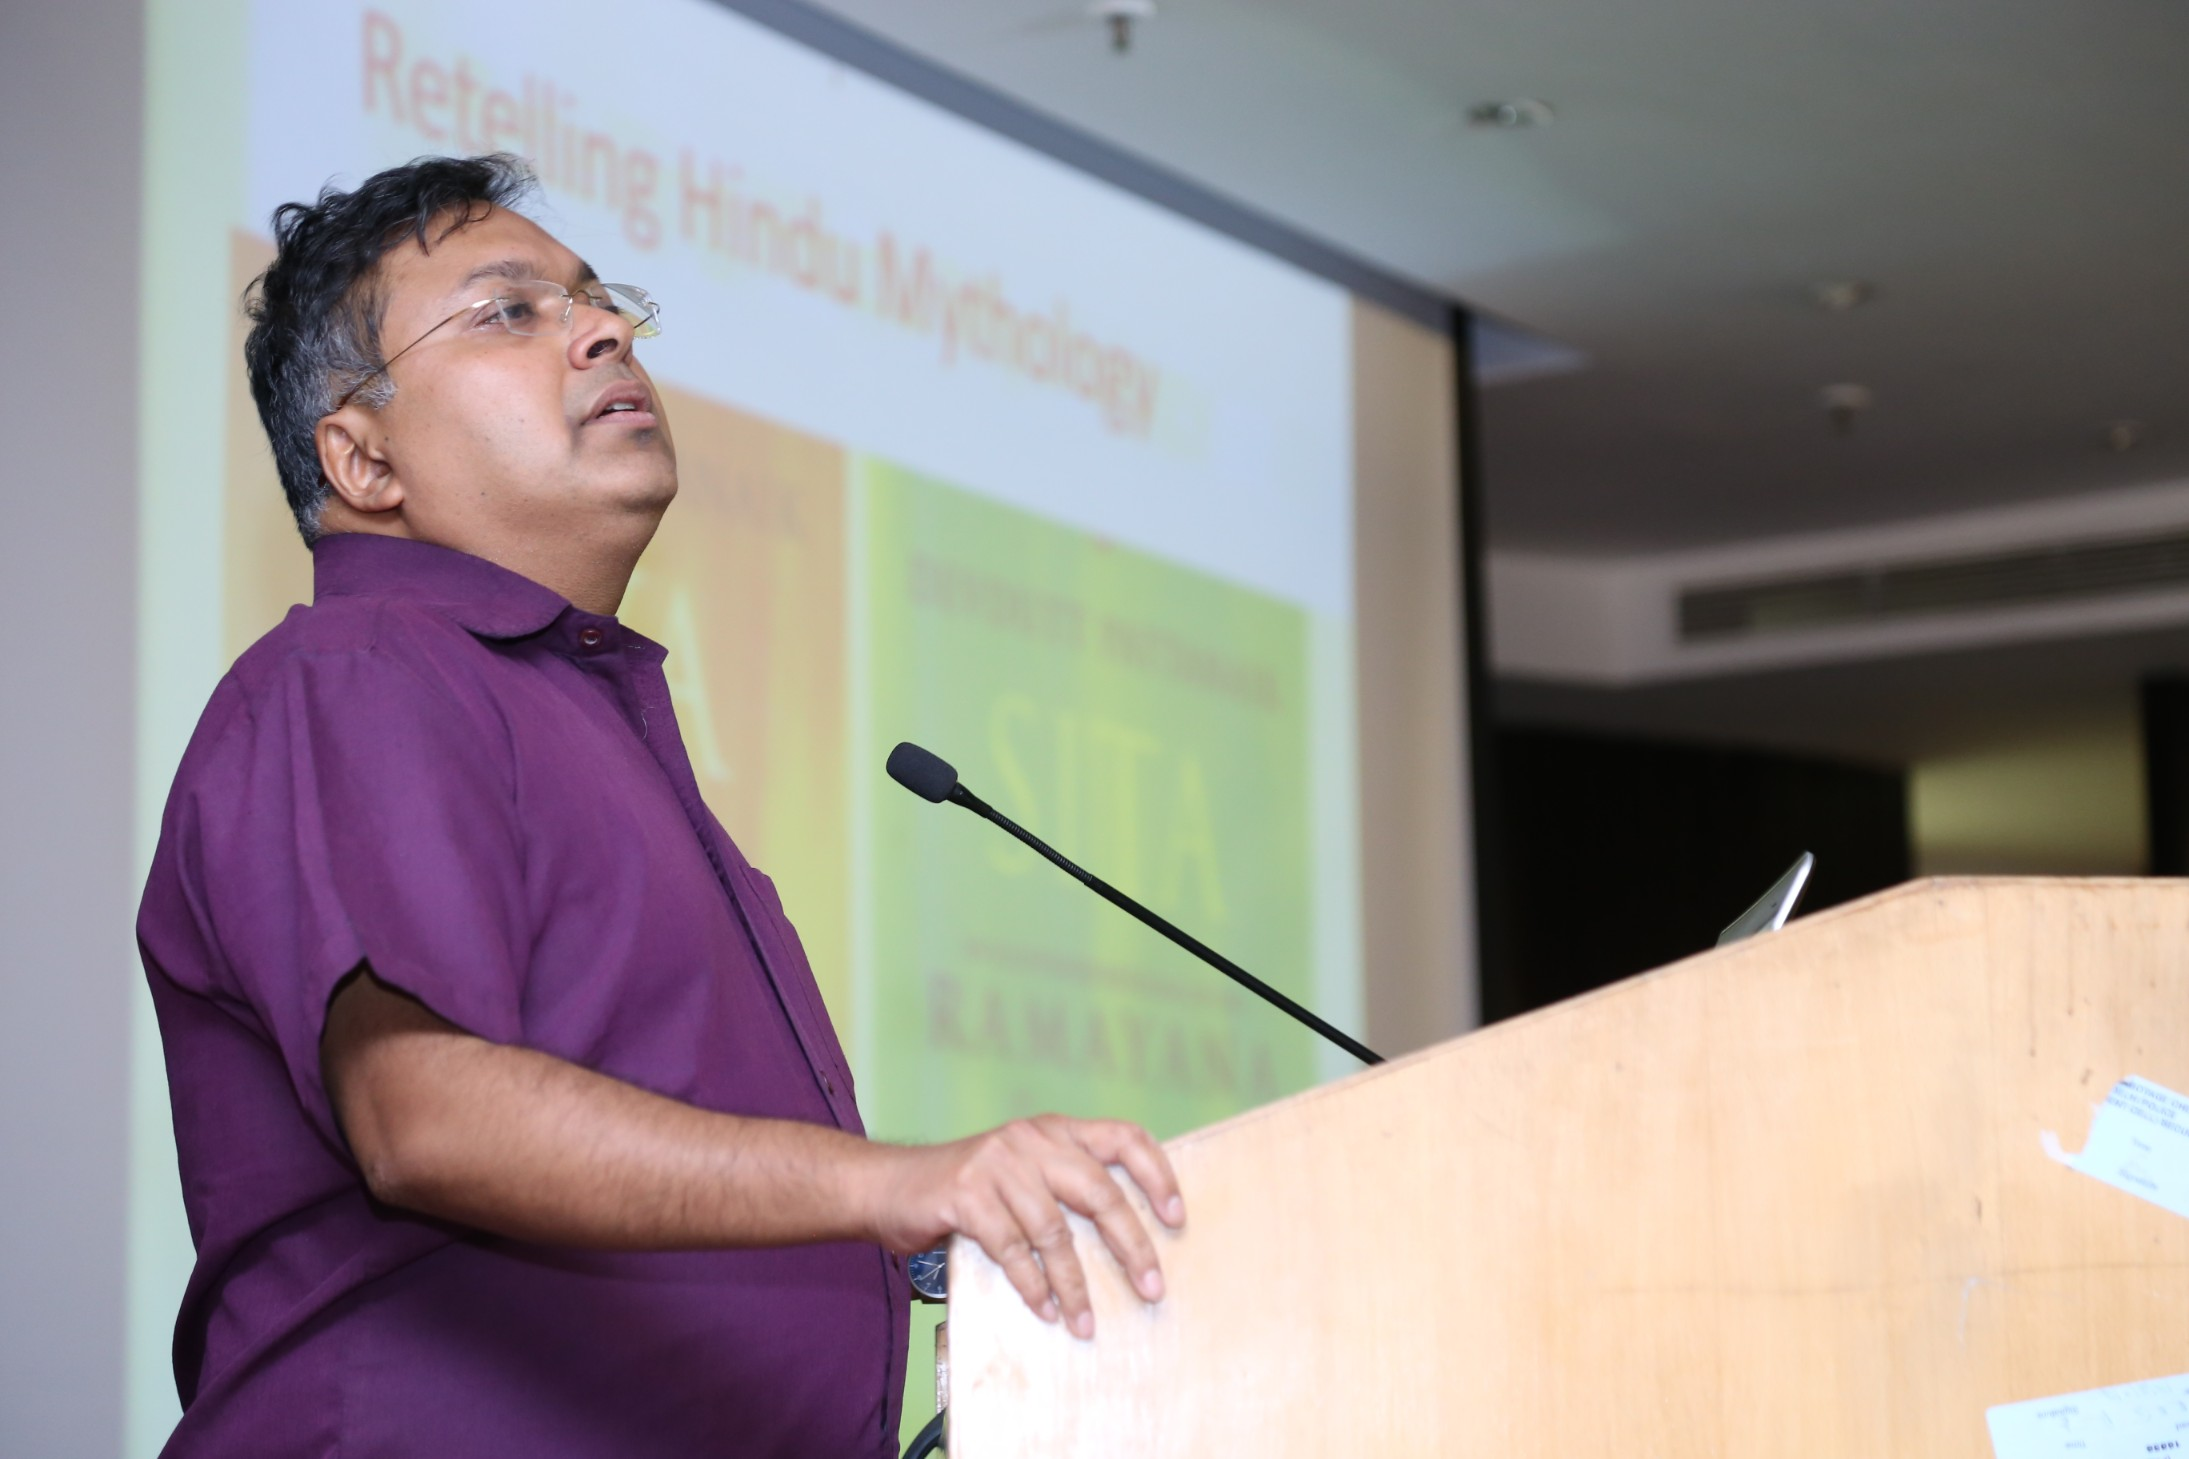 Talk by Devtutt Pattanaik